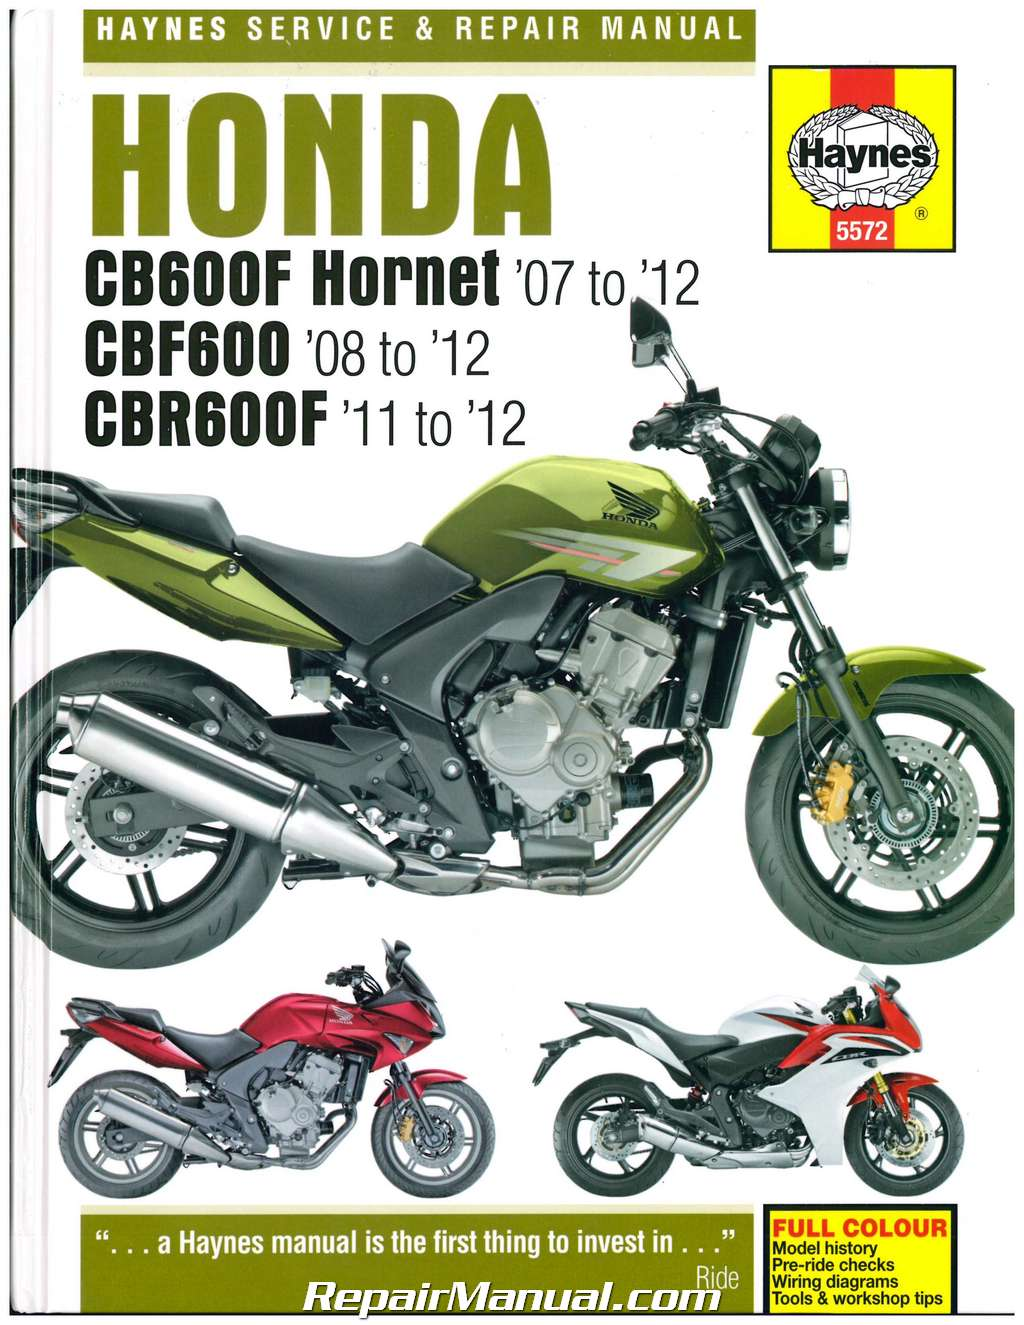 Honda-CB600F-Hornet-CBF600-CBR600F-Repair-Manual05.jpg ...